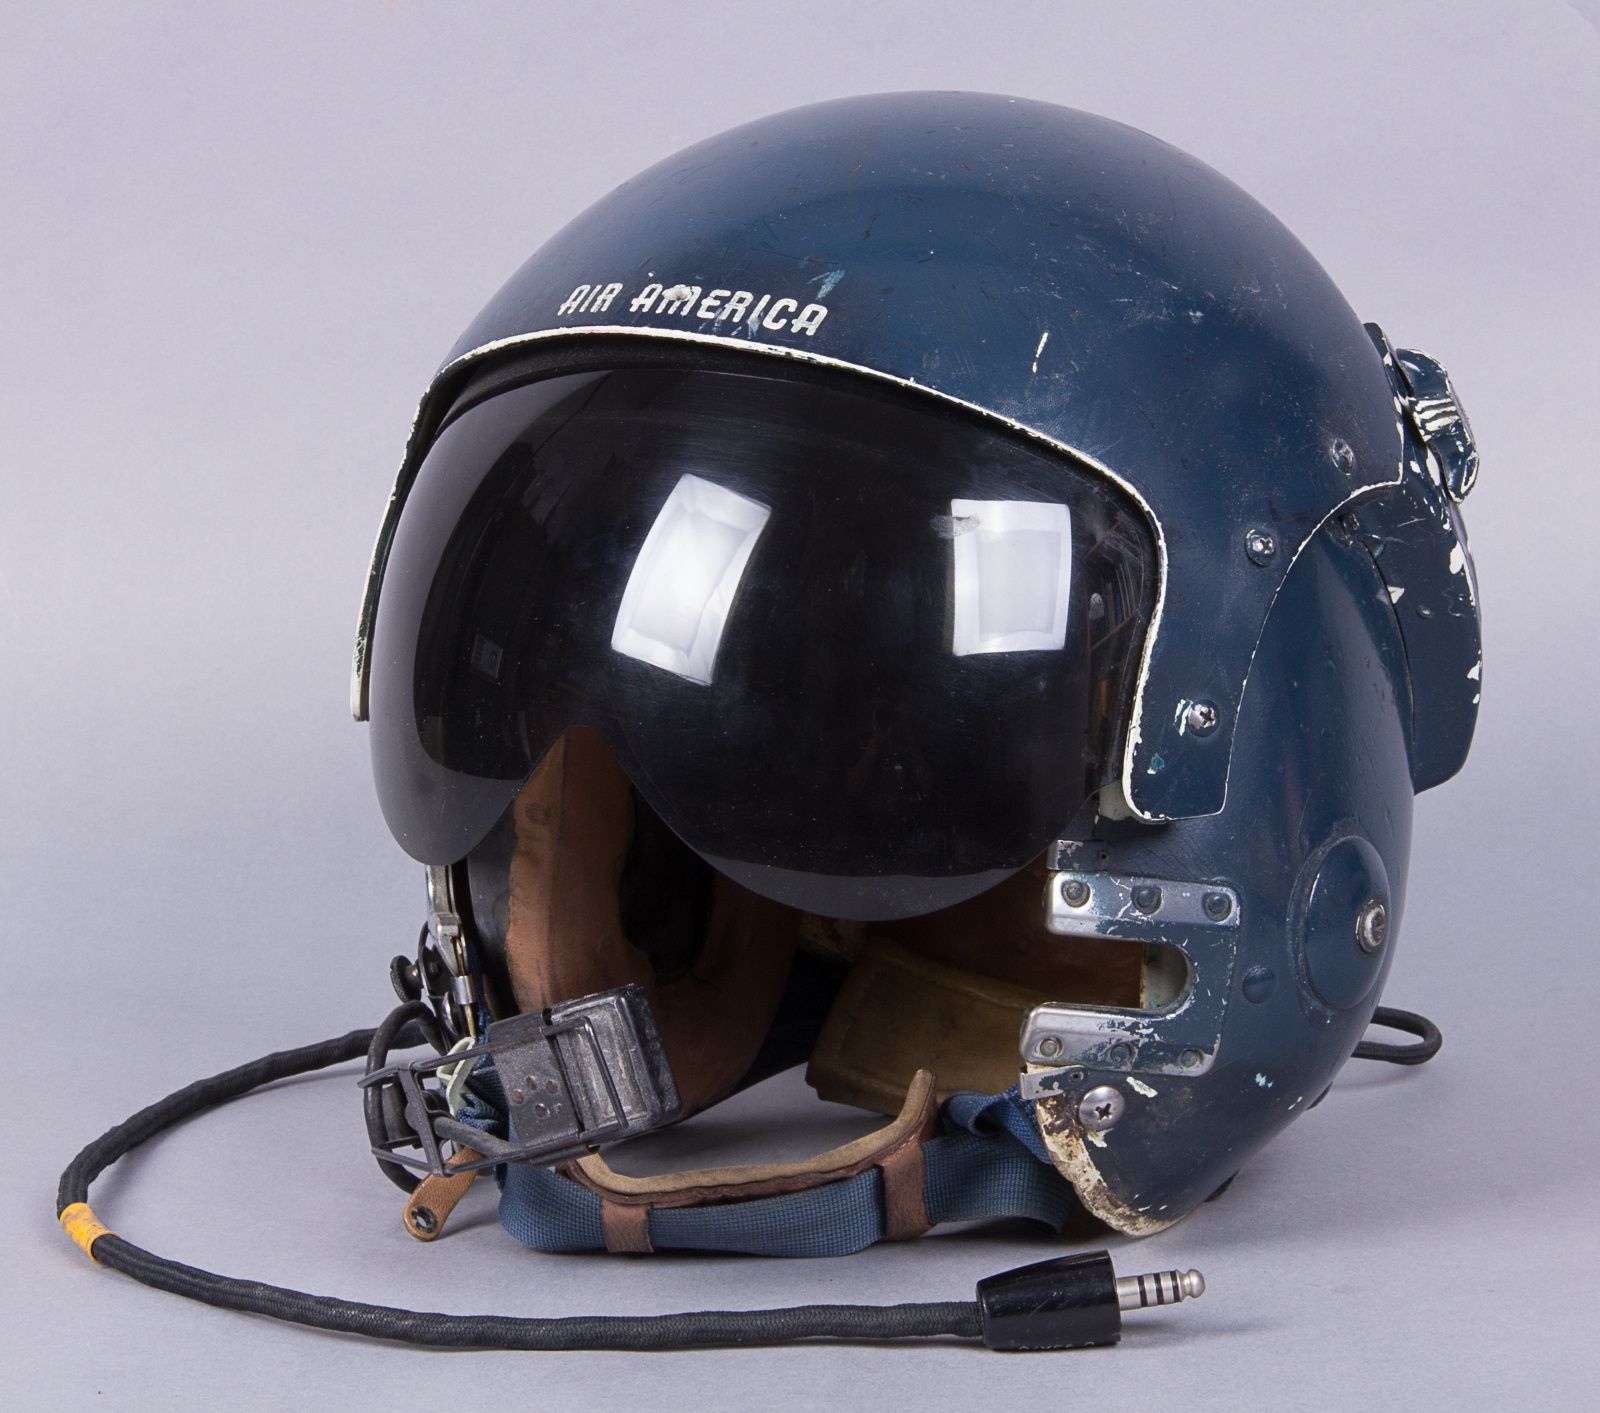 This APH-6 flight helmet in our collection was worn by another Air America Huey pilot on that fateful day. Lyle D. Genz took off from the ICCS ramp on 29 April 1975, as rockets and mortar round hit the facility.